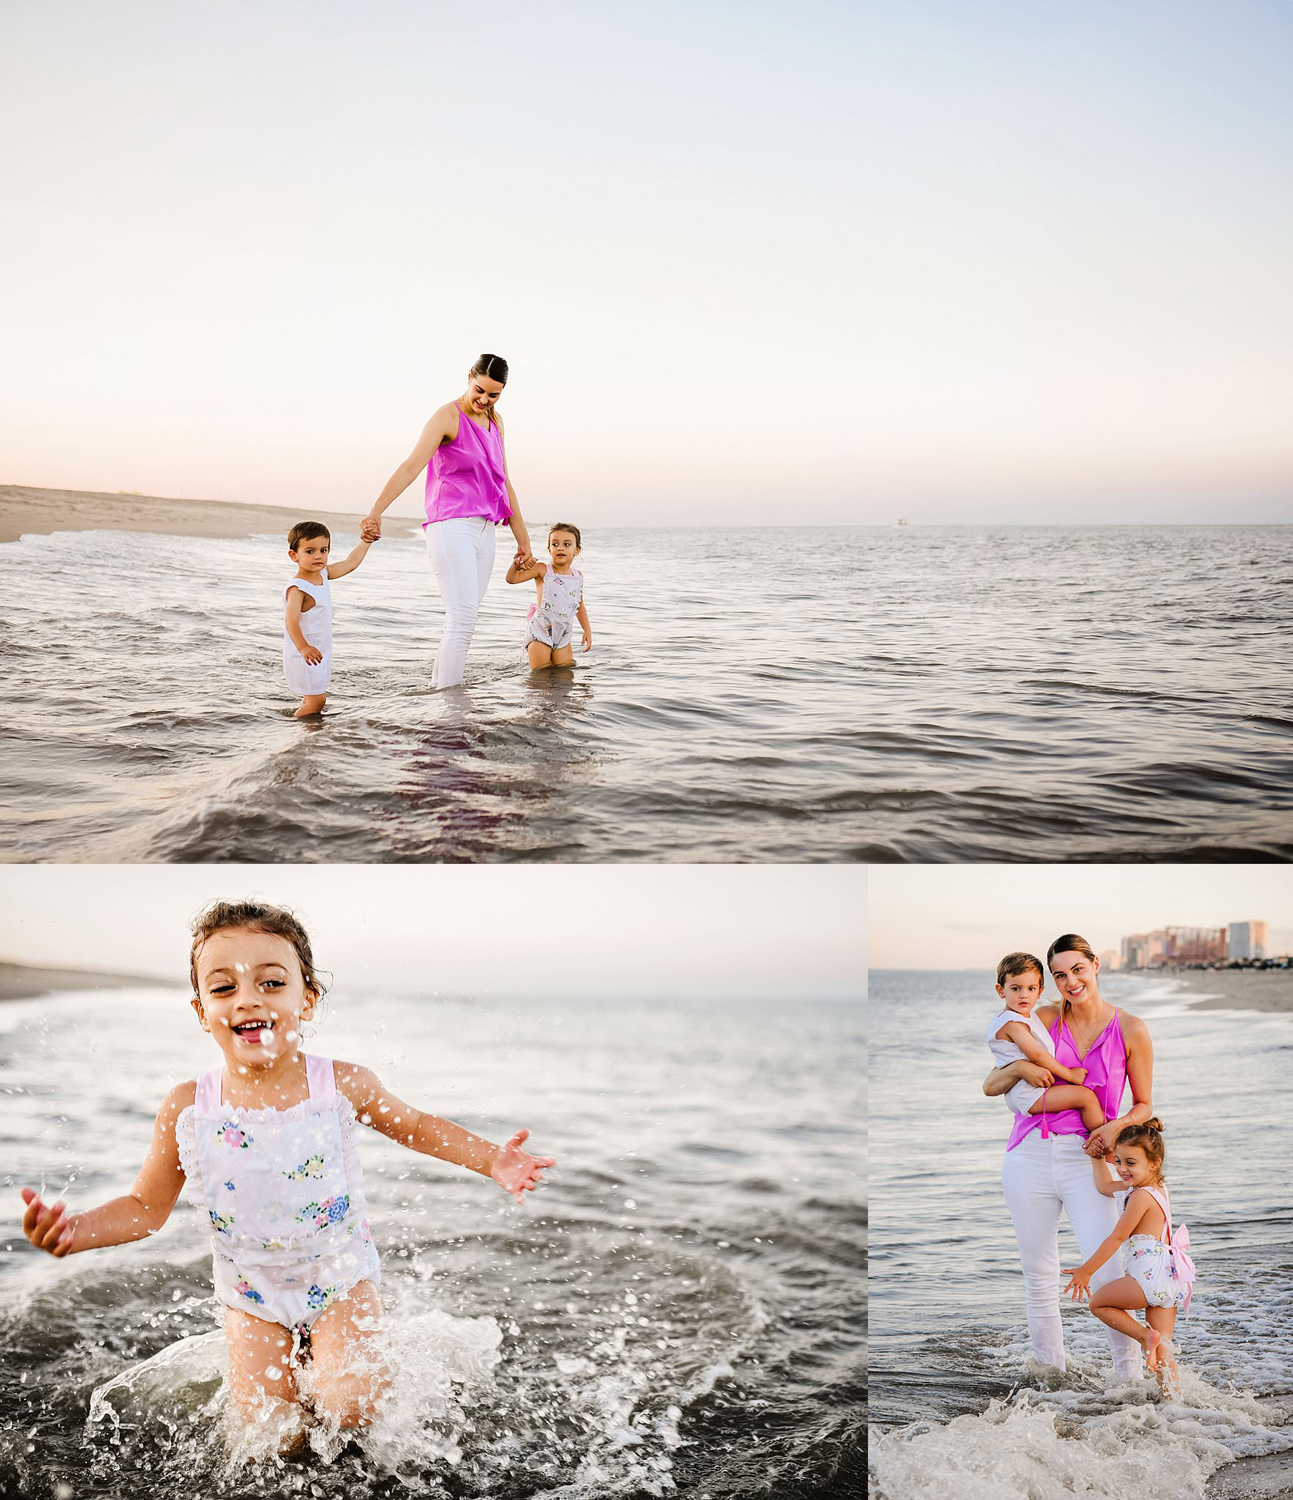 mommy-and-me-beach-photos-melissa-bliss-photography-va-beach-va.jpg